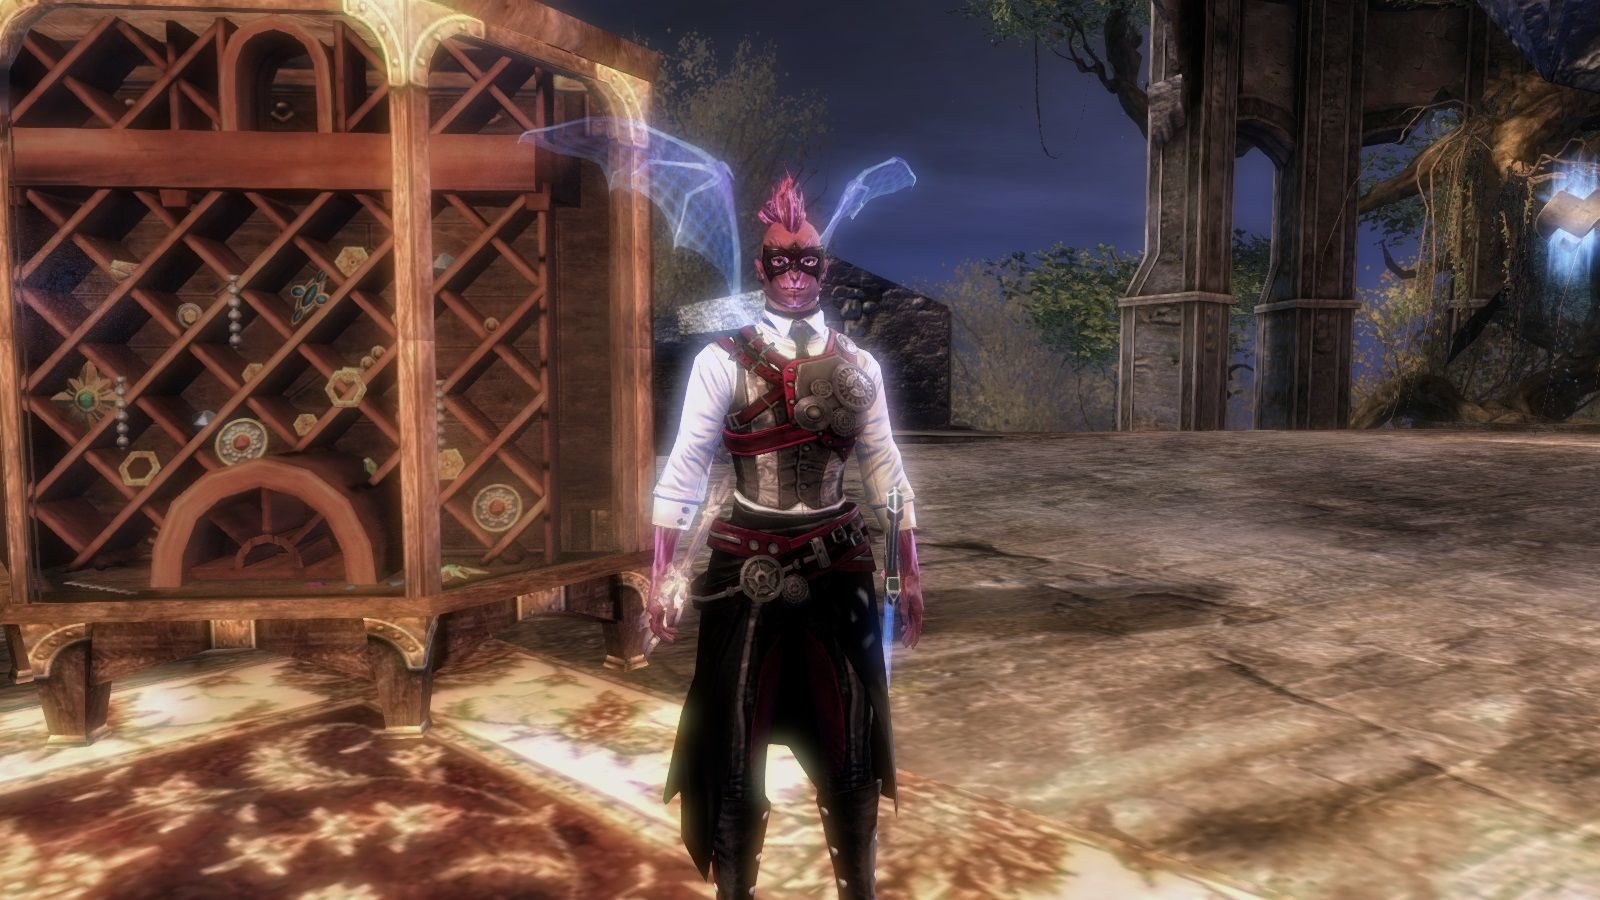 gw2 fashion posing with my mate balthazar d guild wars 2